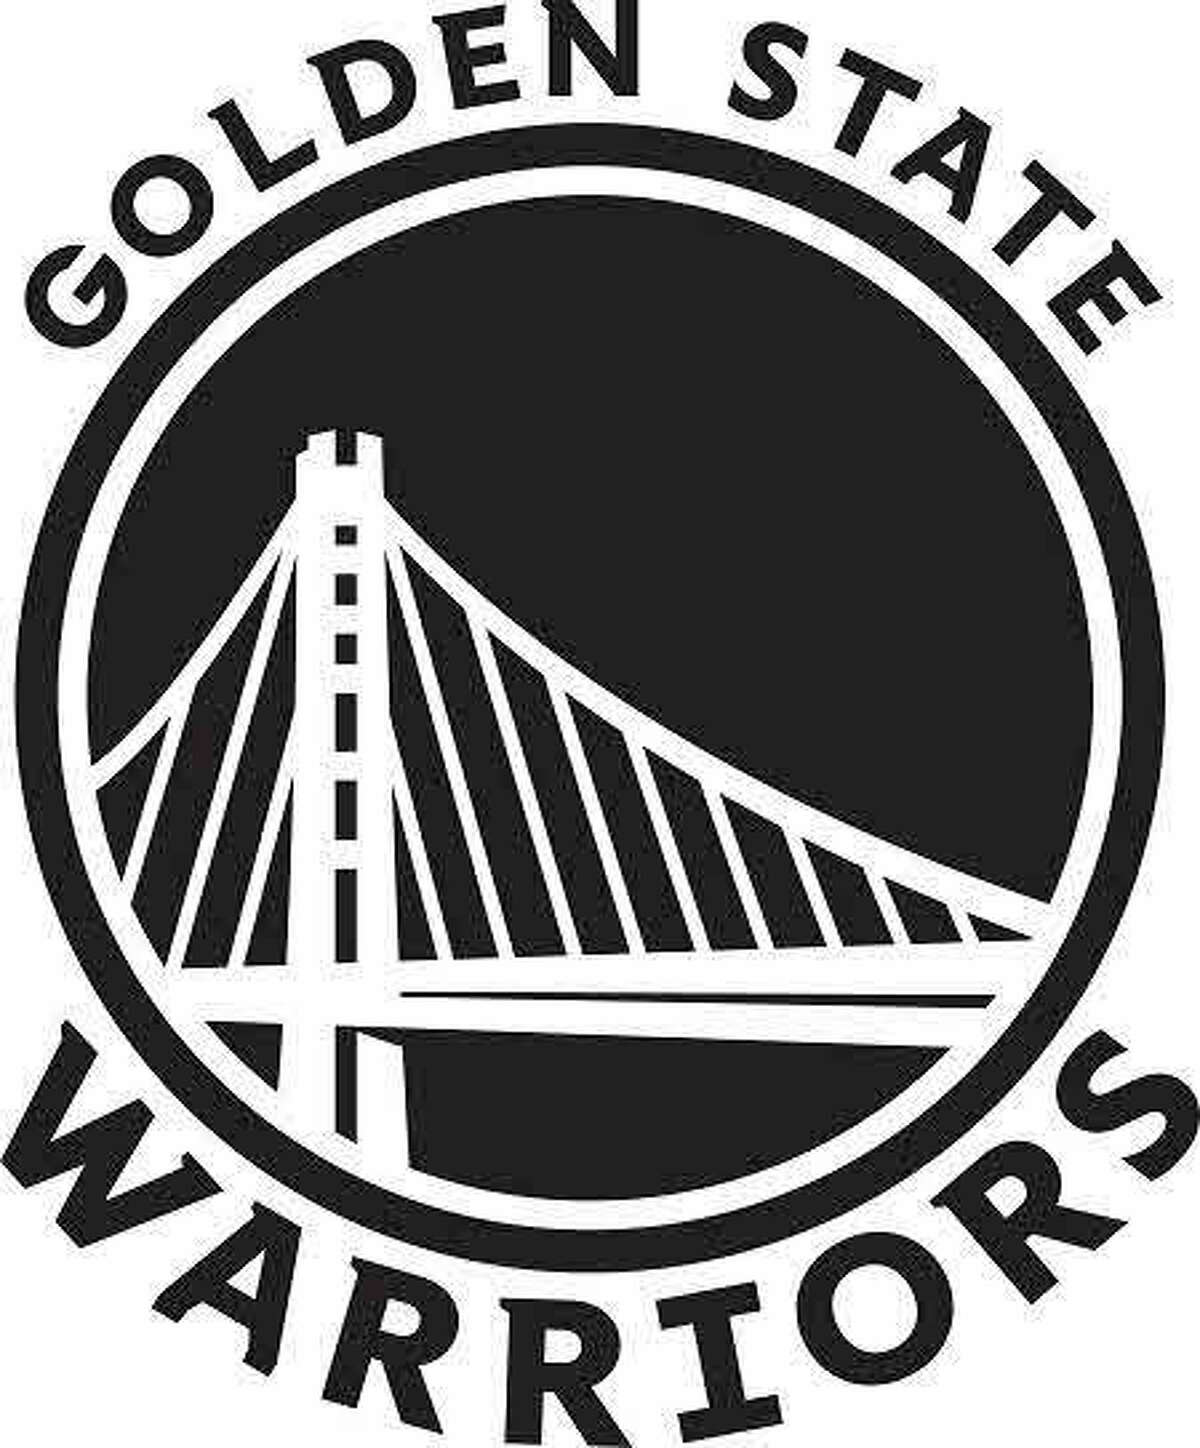 The NBA has applied for European trademarks for four new Golden State Warriors logos.